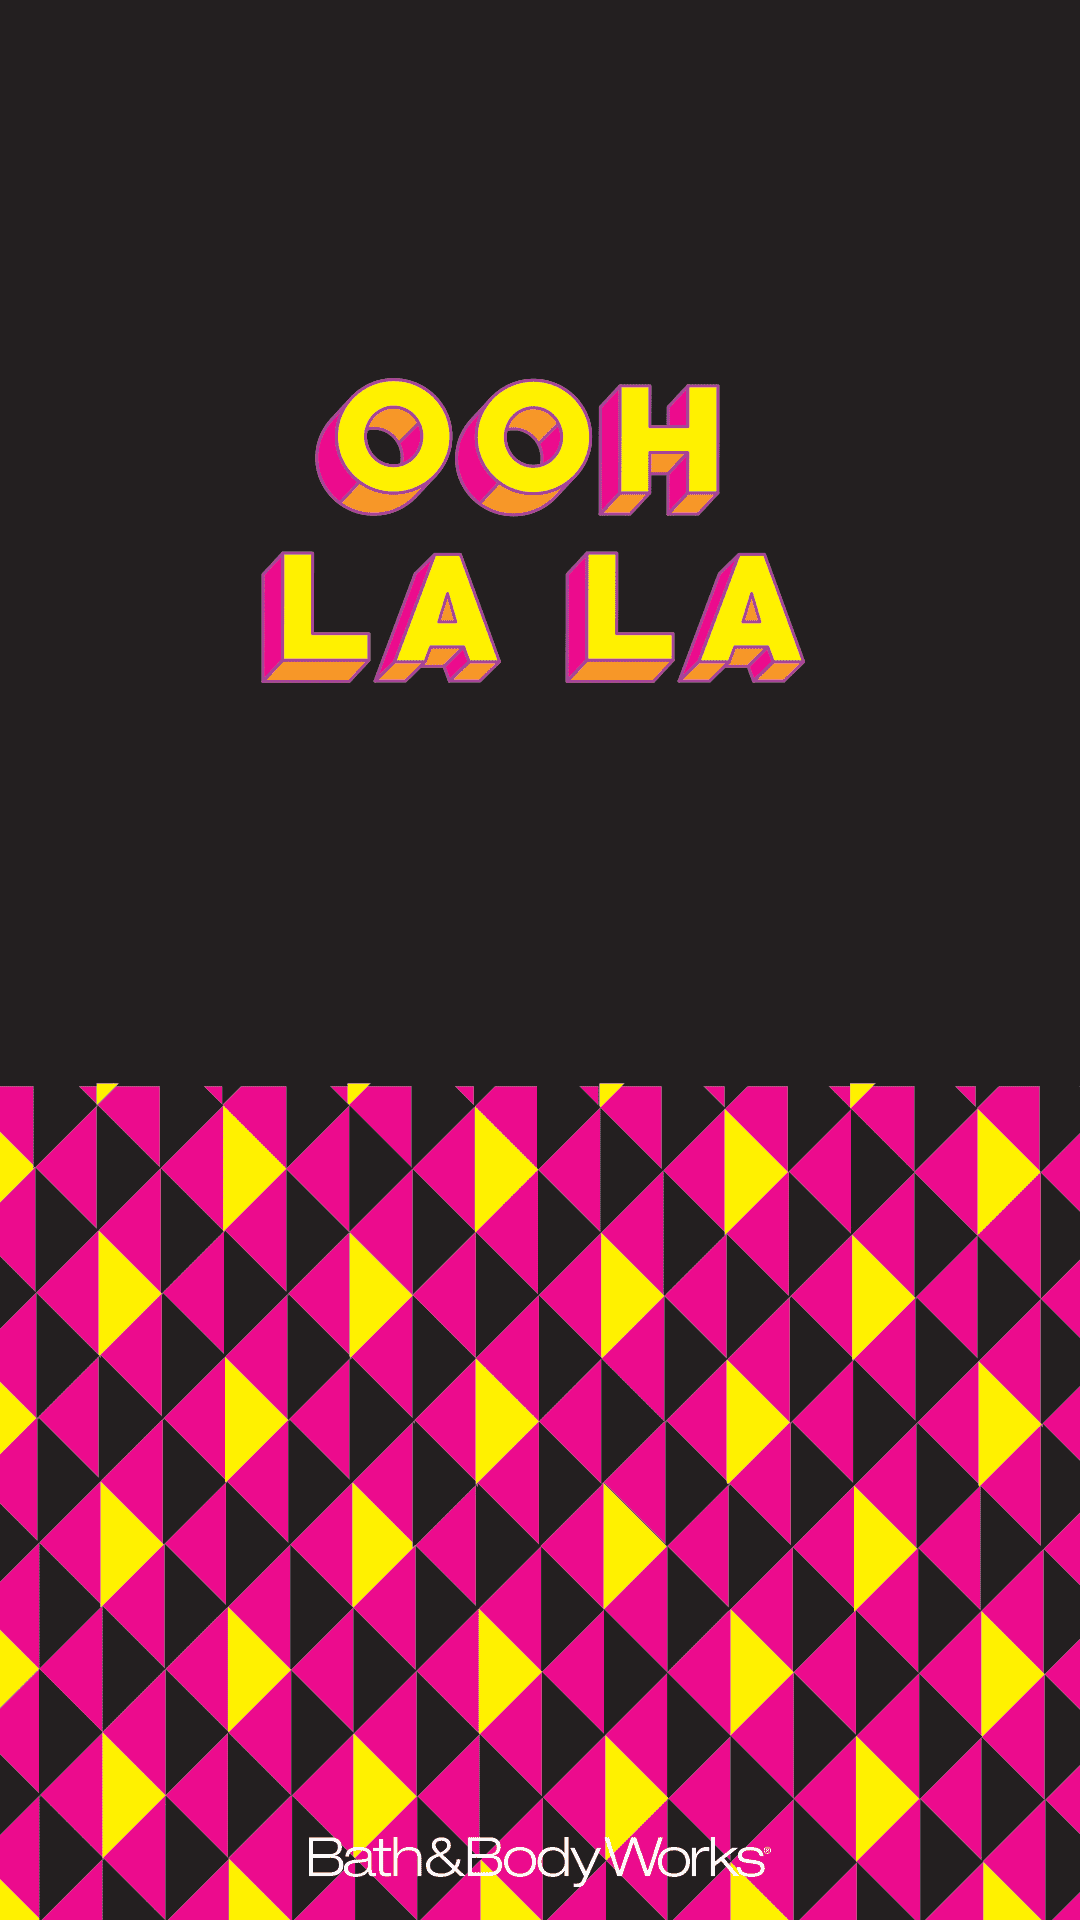 Ooh La La Wallpaper Graphic design poster, Words